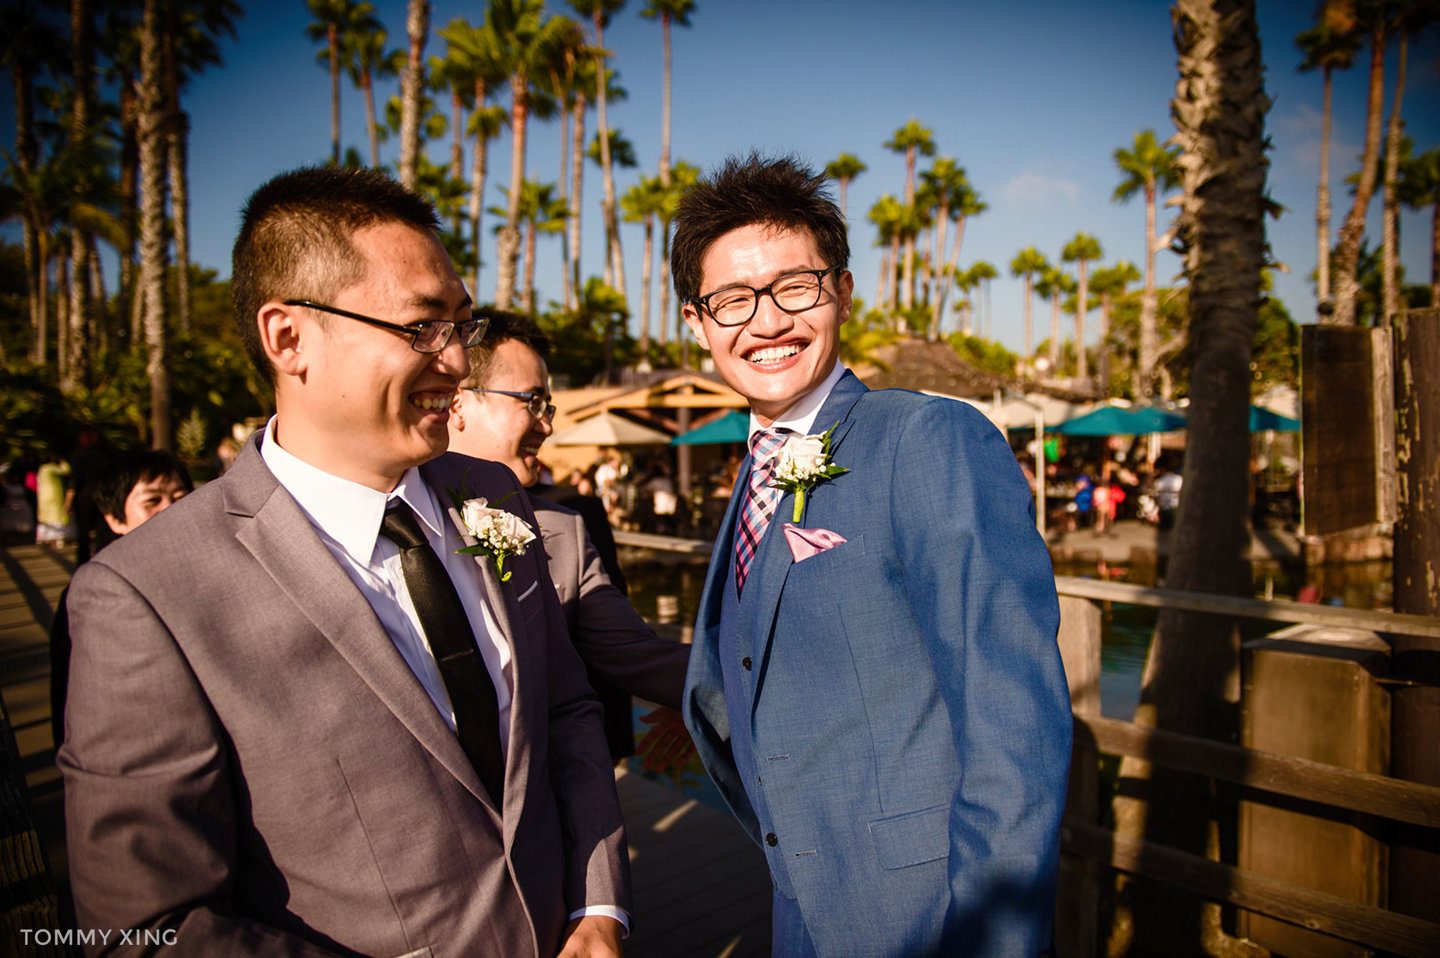 Paradise Point Resort Wedding Xiaolu & Bin San Diego 圣地亚哥婚礼摄影跟拍 Tommy Xing Photography 洛杉矶婚礼婚纱照摄影师 085.jpg